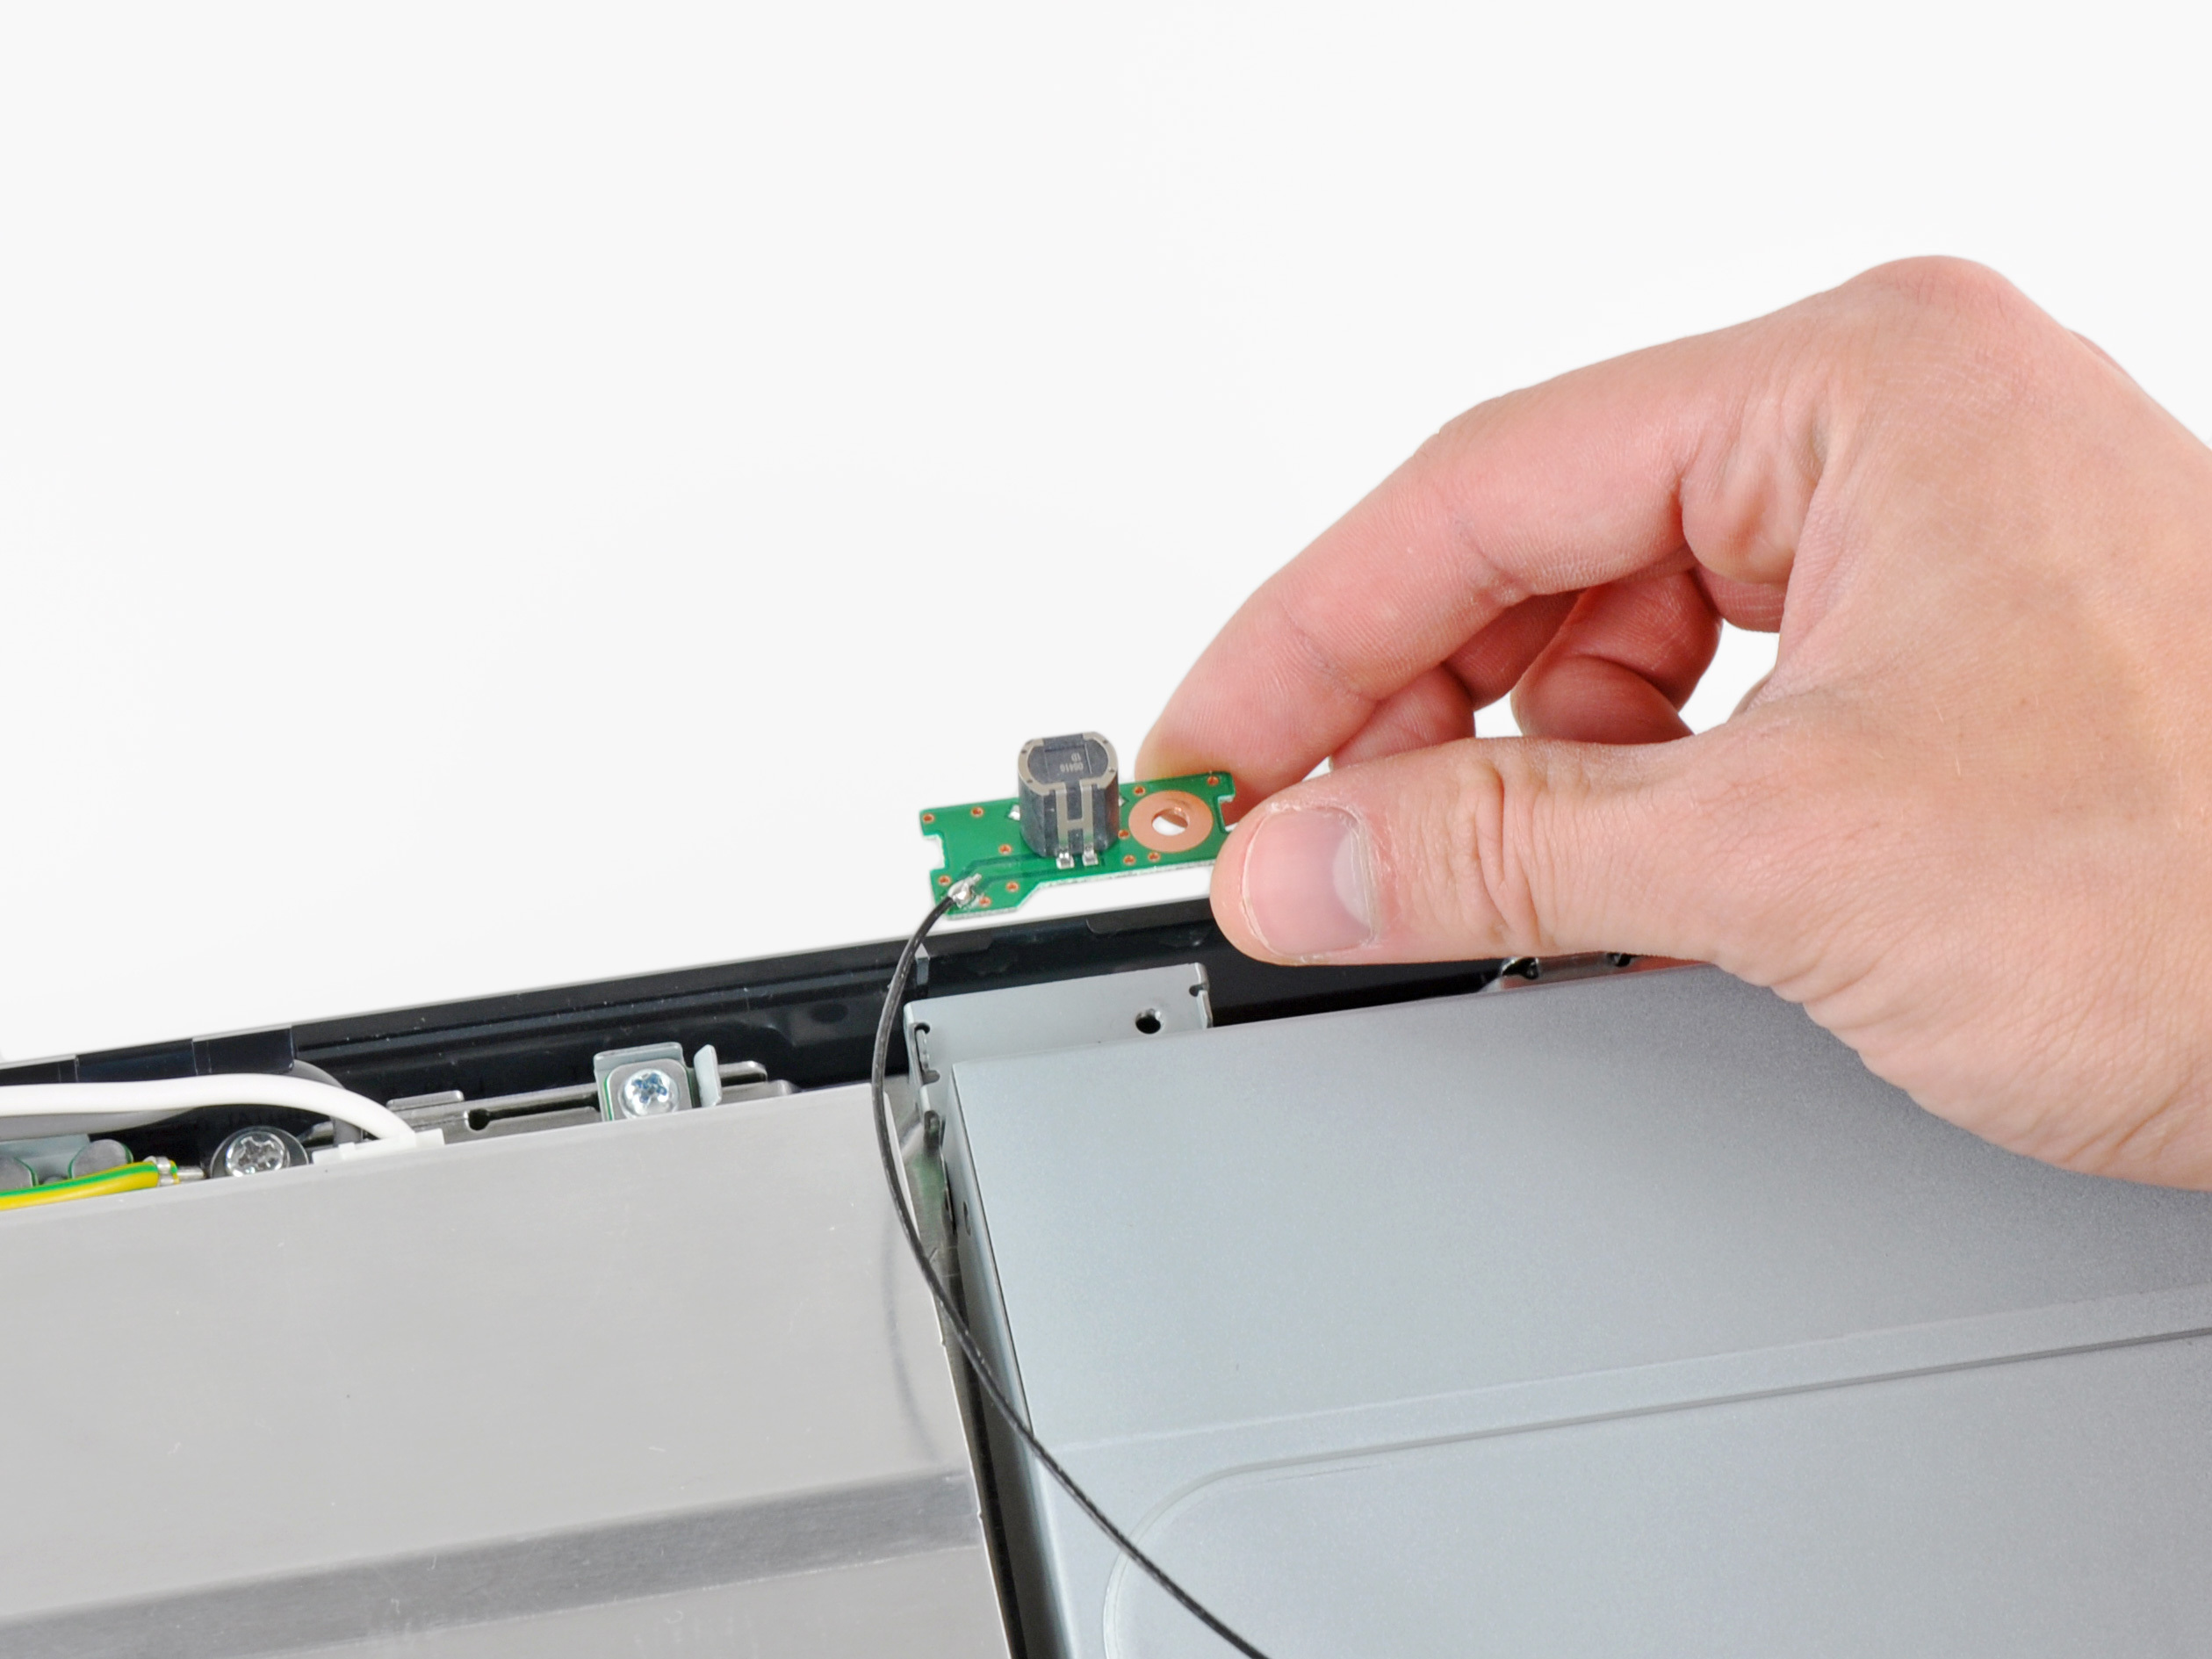 PlayStation 3 Wi-Fi Antenna Replacement - iFixit Repair Guide